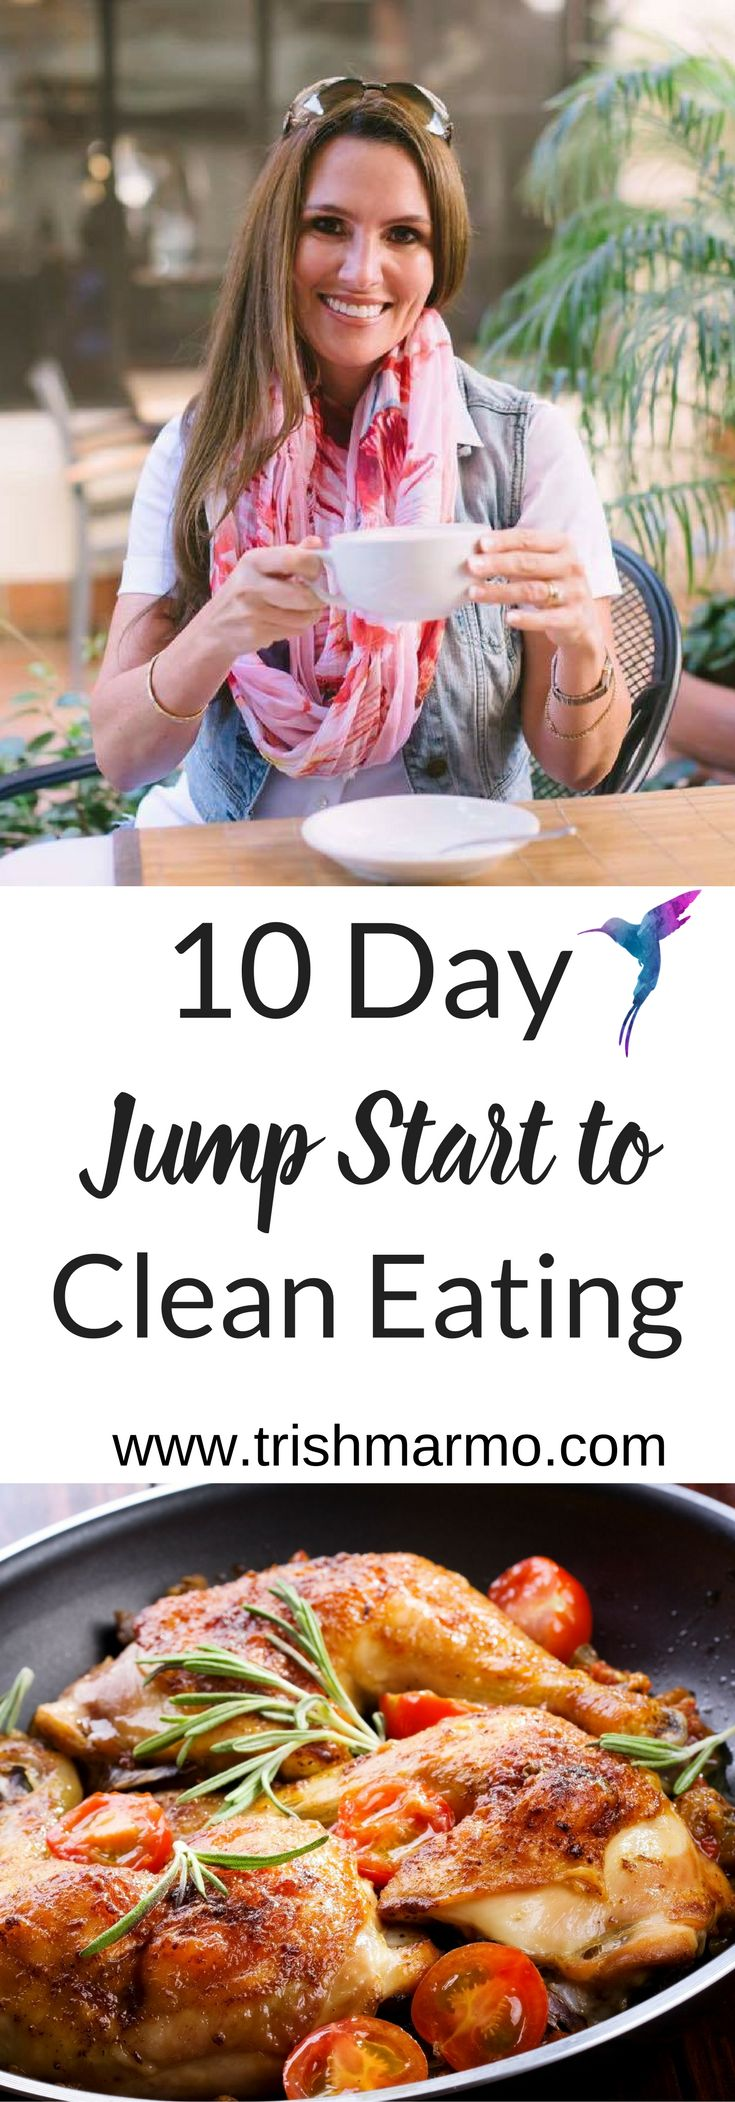 Hey Busy Moms!  Are you ready to free up some time?  Shed unwanted pounds and look and feel your best?  Get ready for summer with my 10 Day Jump Start to Clean Eating Guide. Not only will you learn time-saving tips, you'll have access to the EXACT steps I teach my weight loss clients. Summer is just around the corner, so what are you waiting for?!